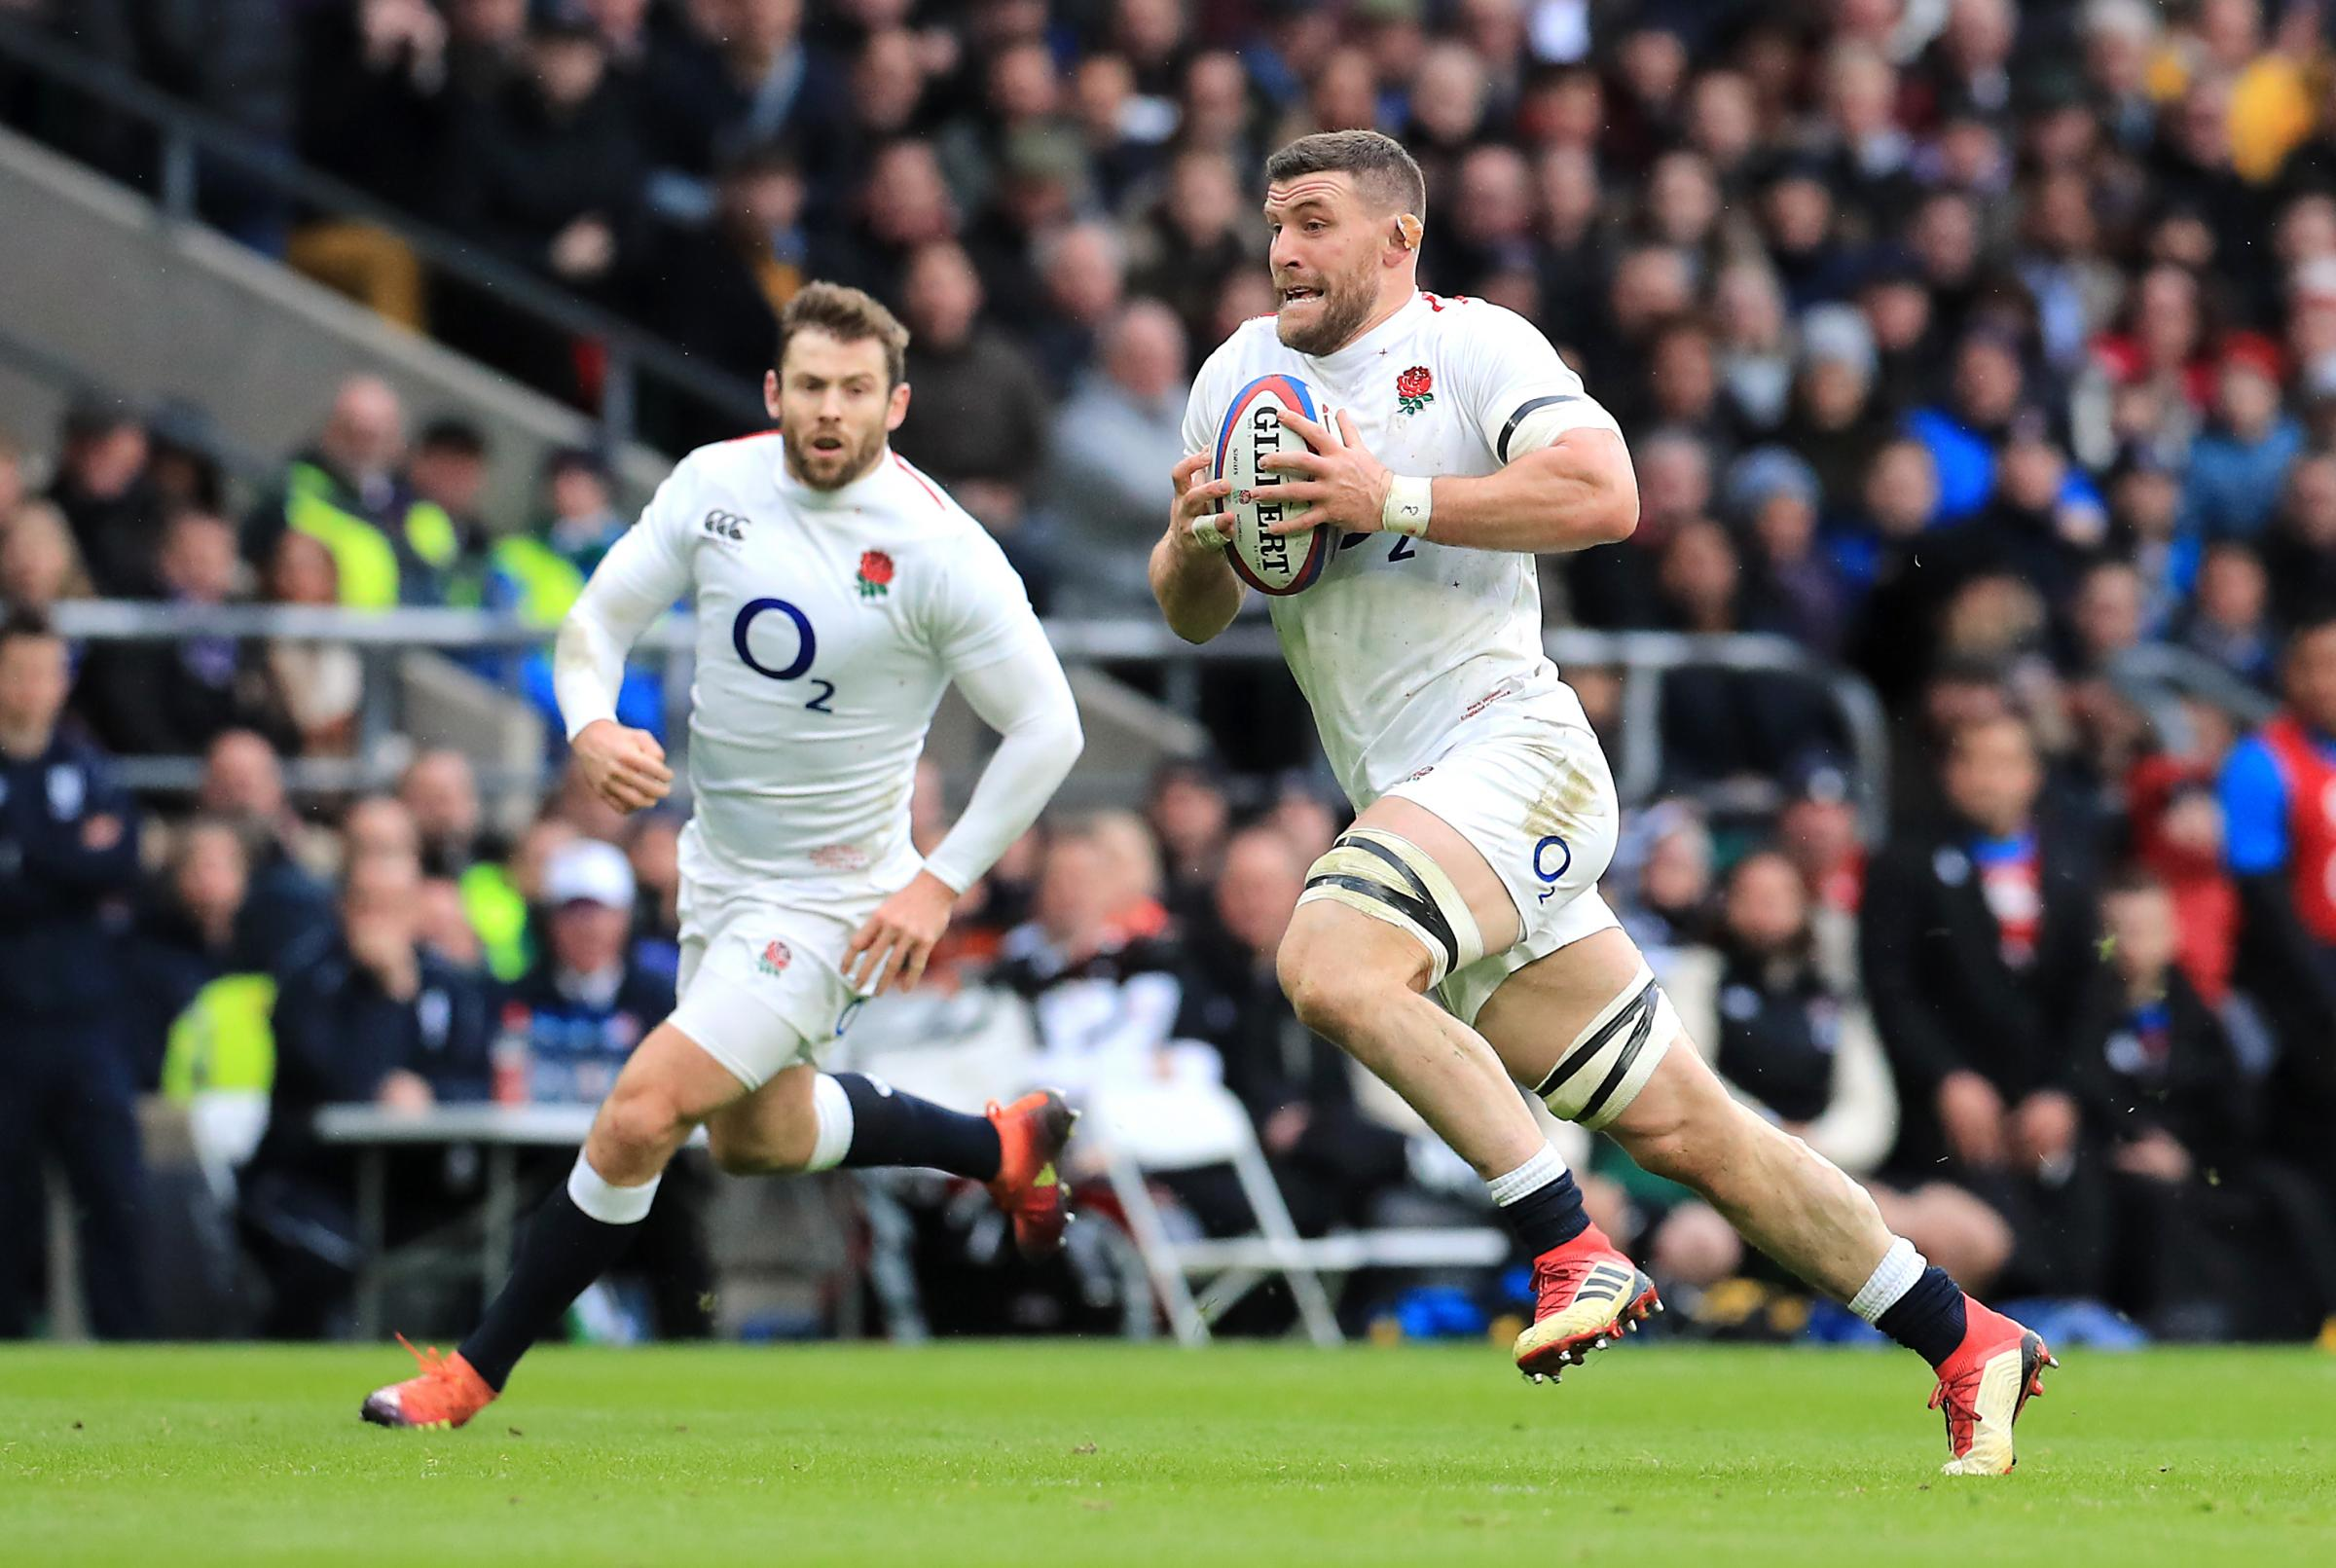 Here I come: England's Cumbrian star Mark Wilson charges at the France defence at Twickenham